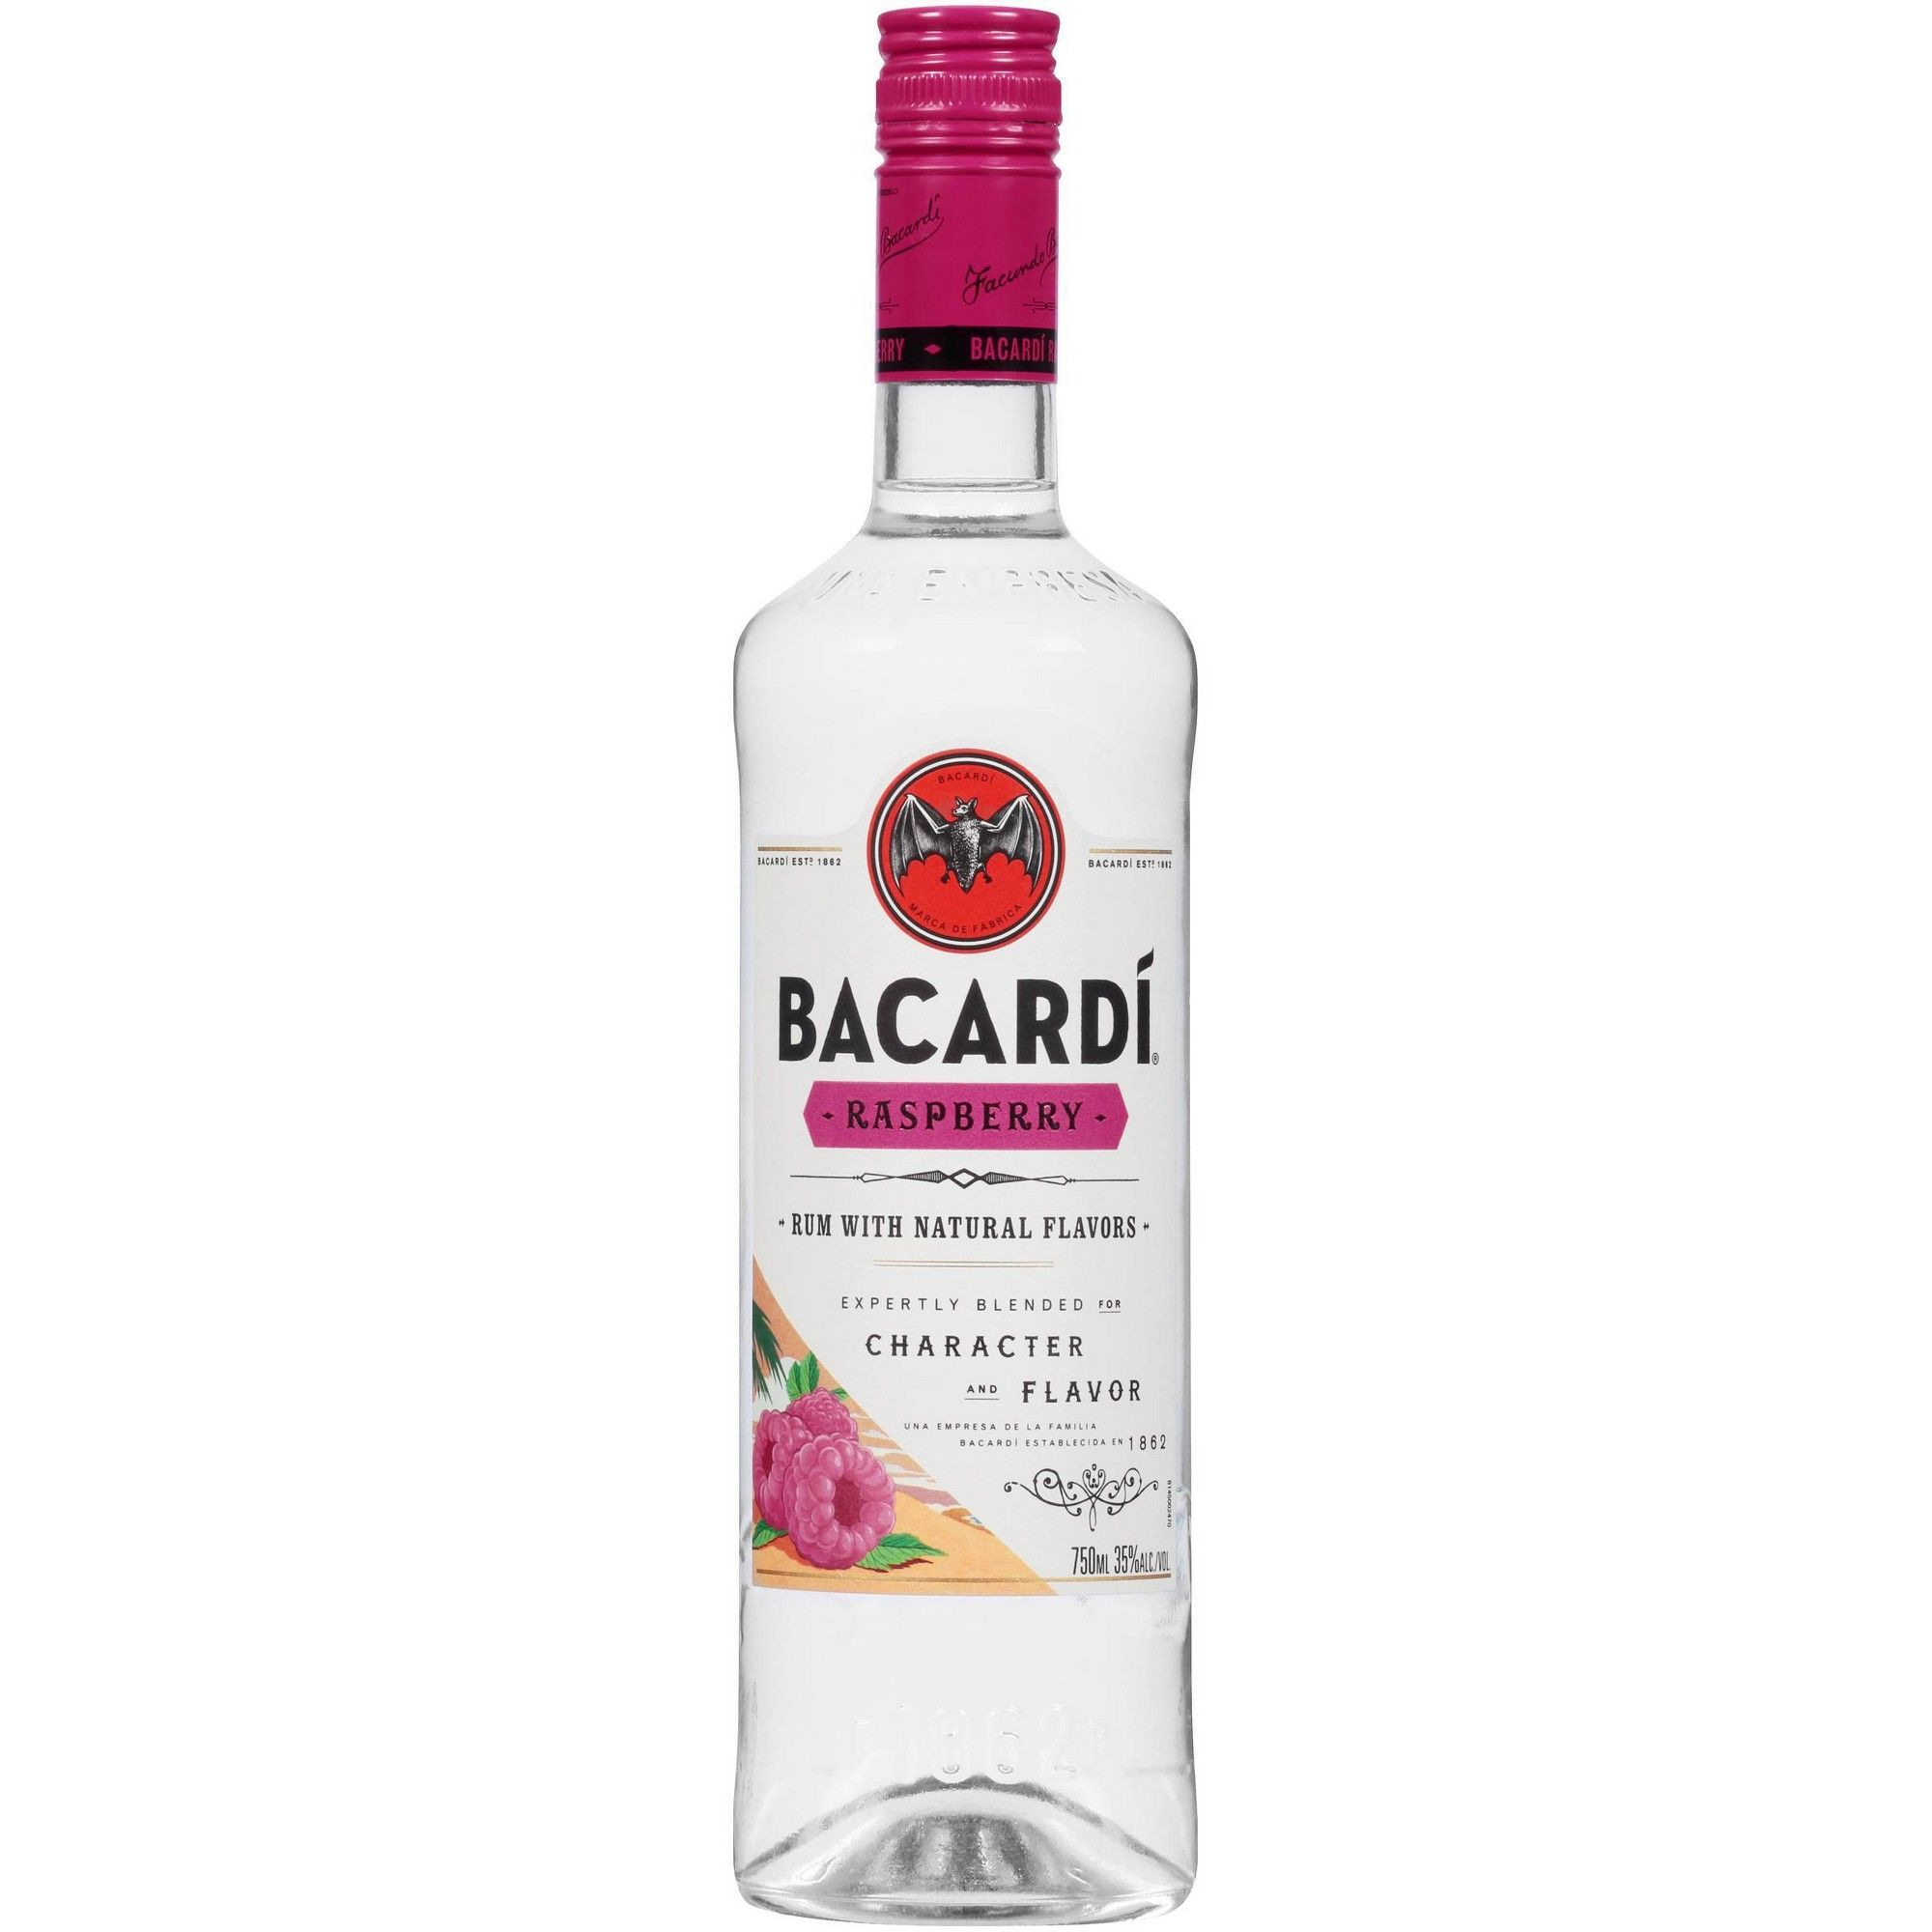 Bacardi Raspberry Rum 750ml Bottle Bottle Rum